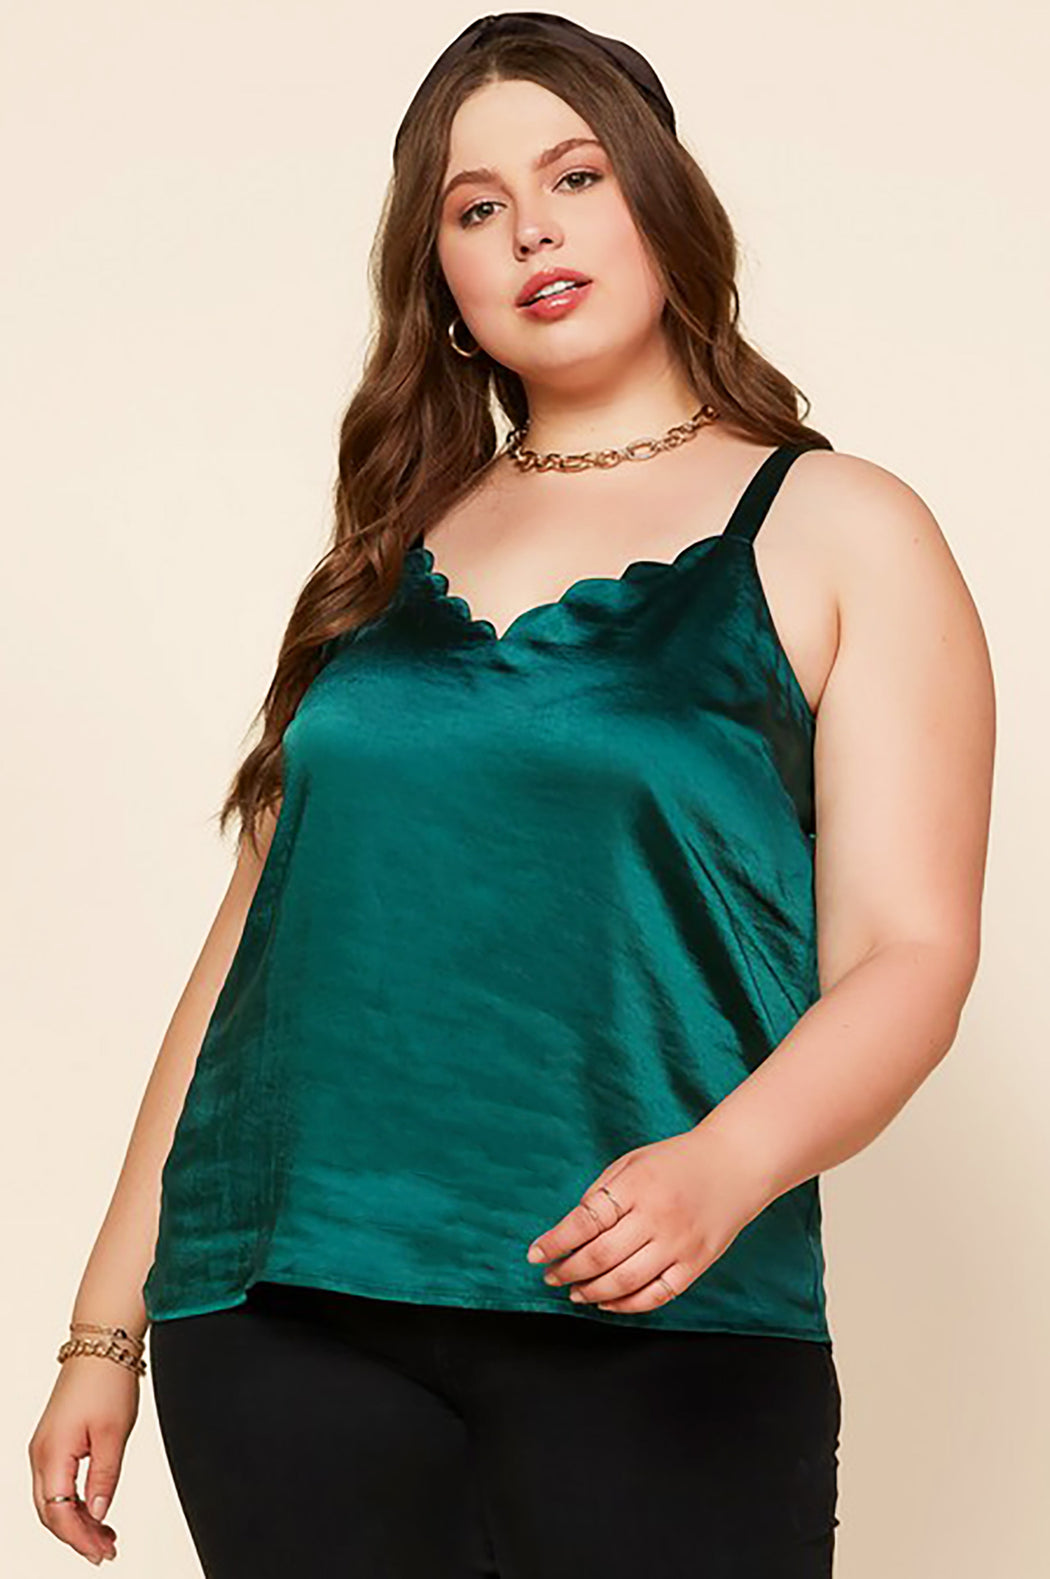 Belle and Broome Joy satin scalloped cami in emerald green on model front view